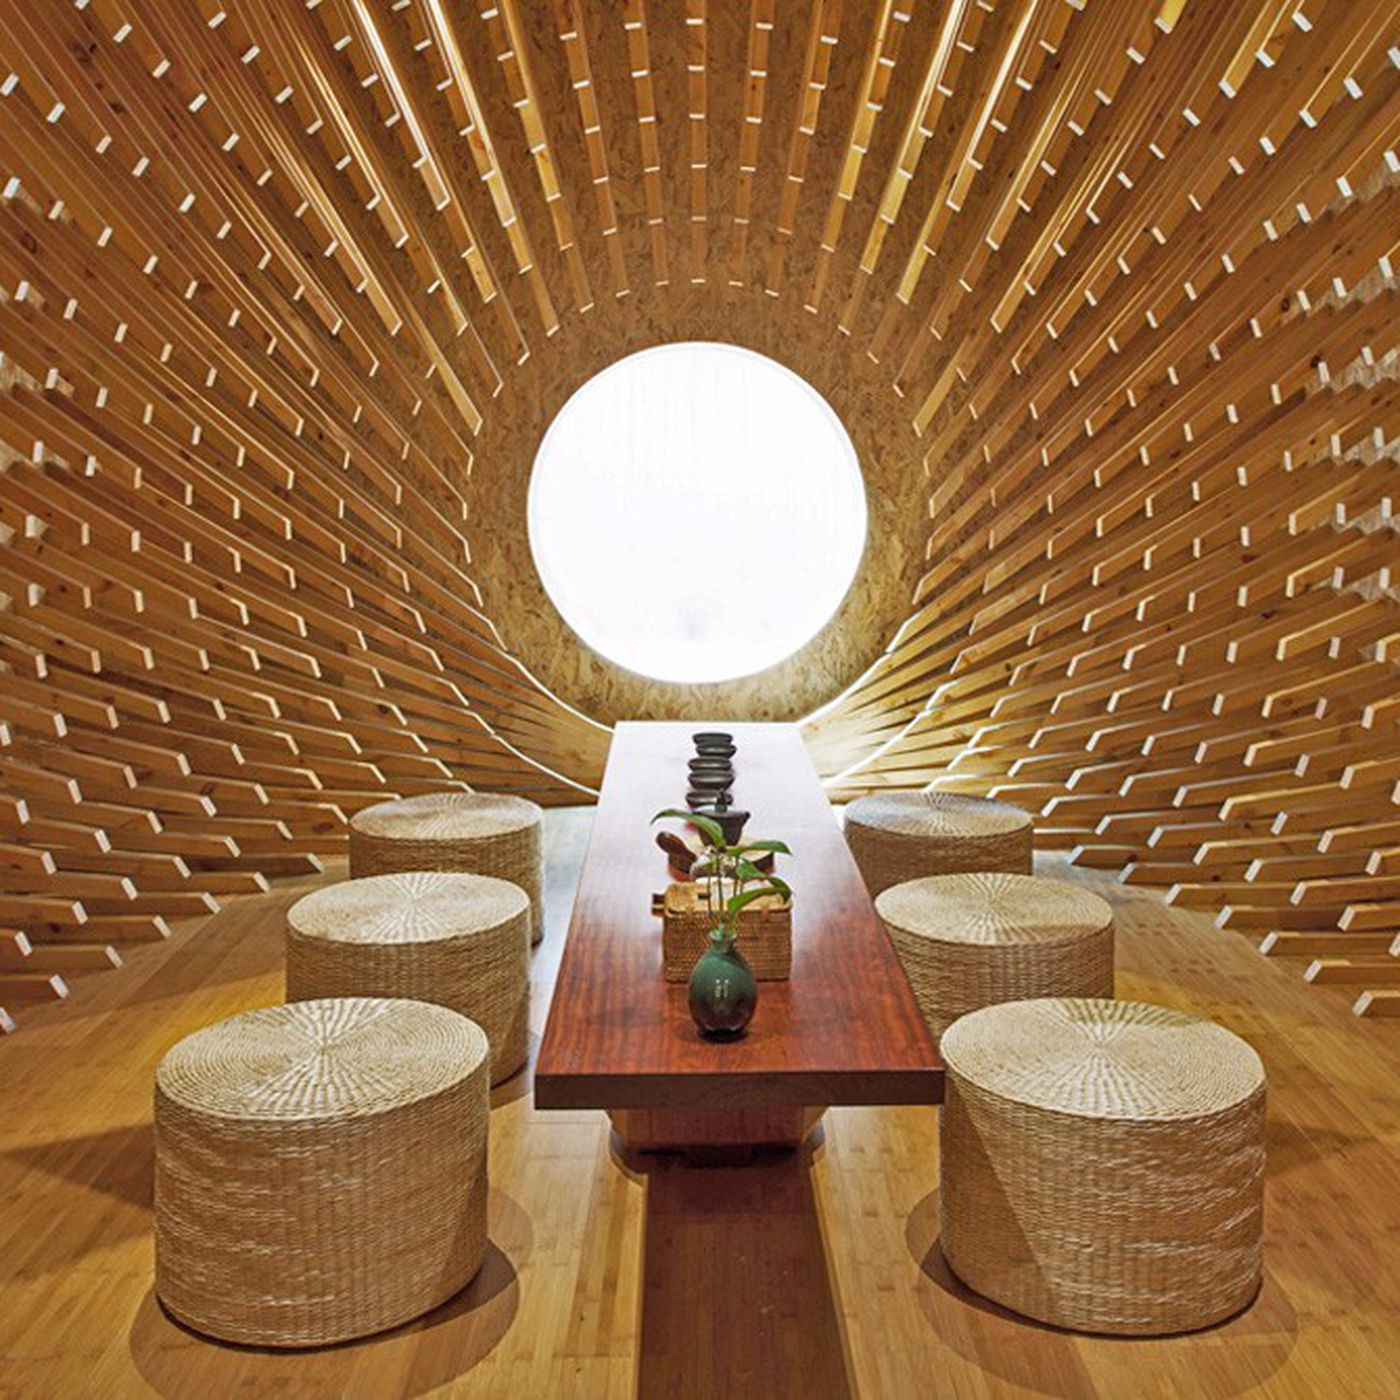 Cocoon Design Bank.Architectural Optical Illusion Turns Plain Room Into A Wooden